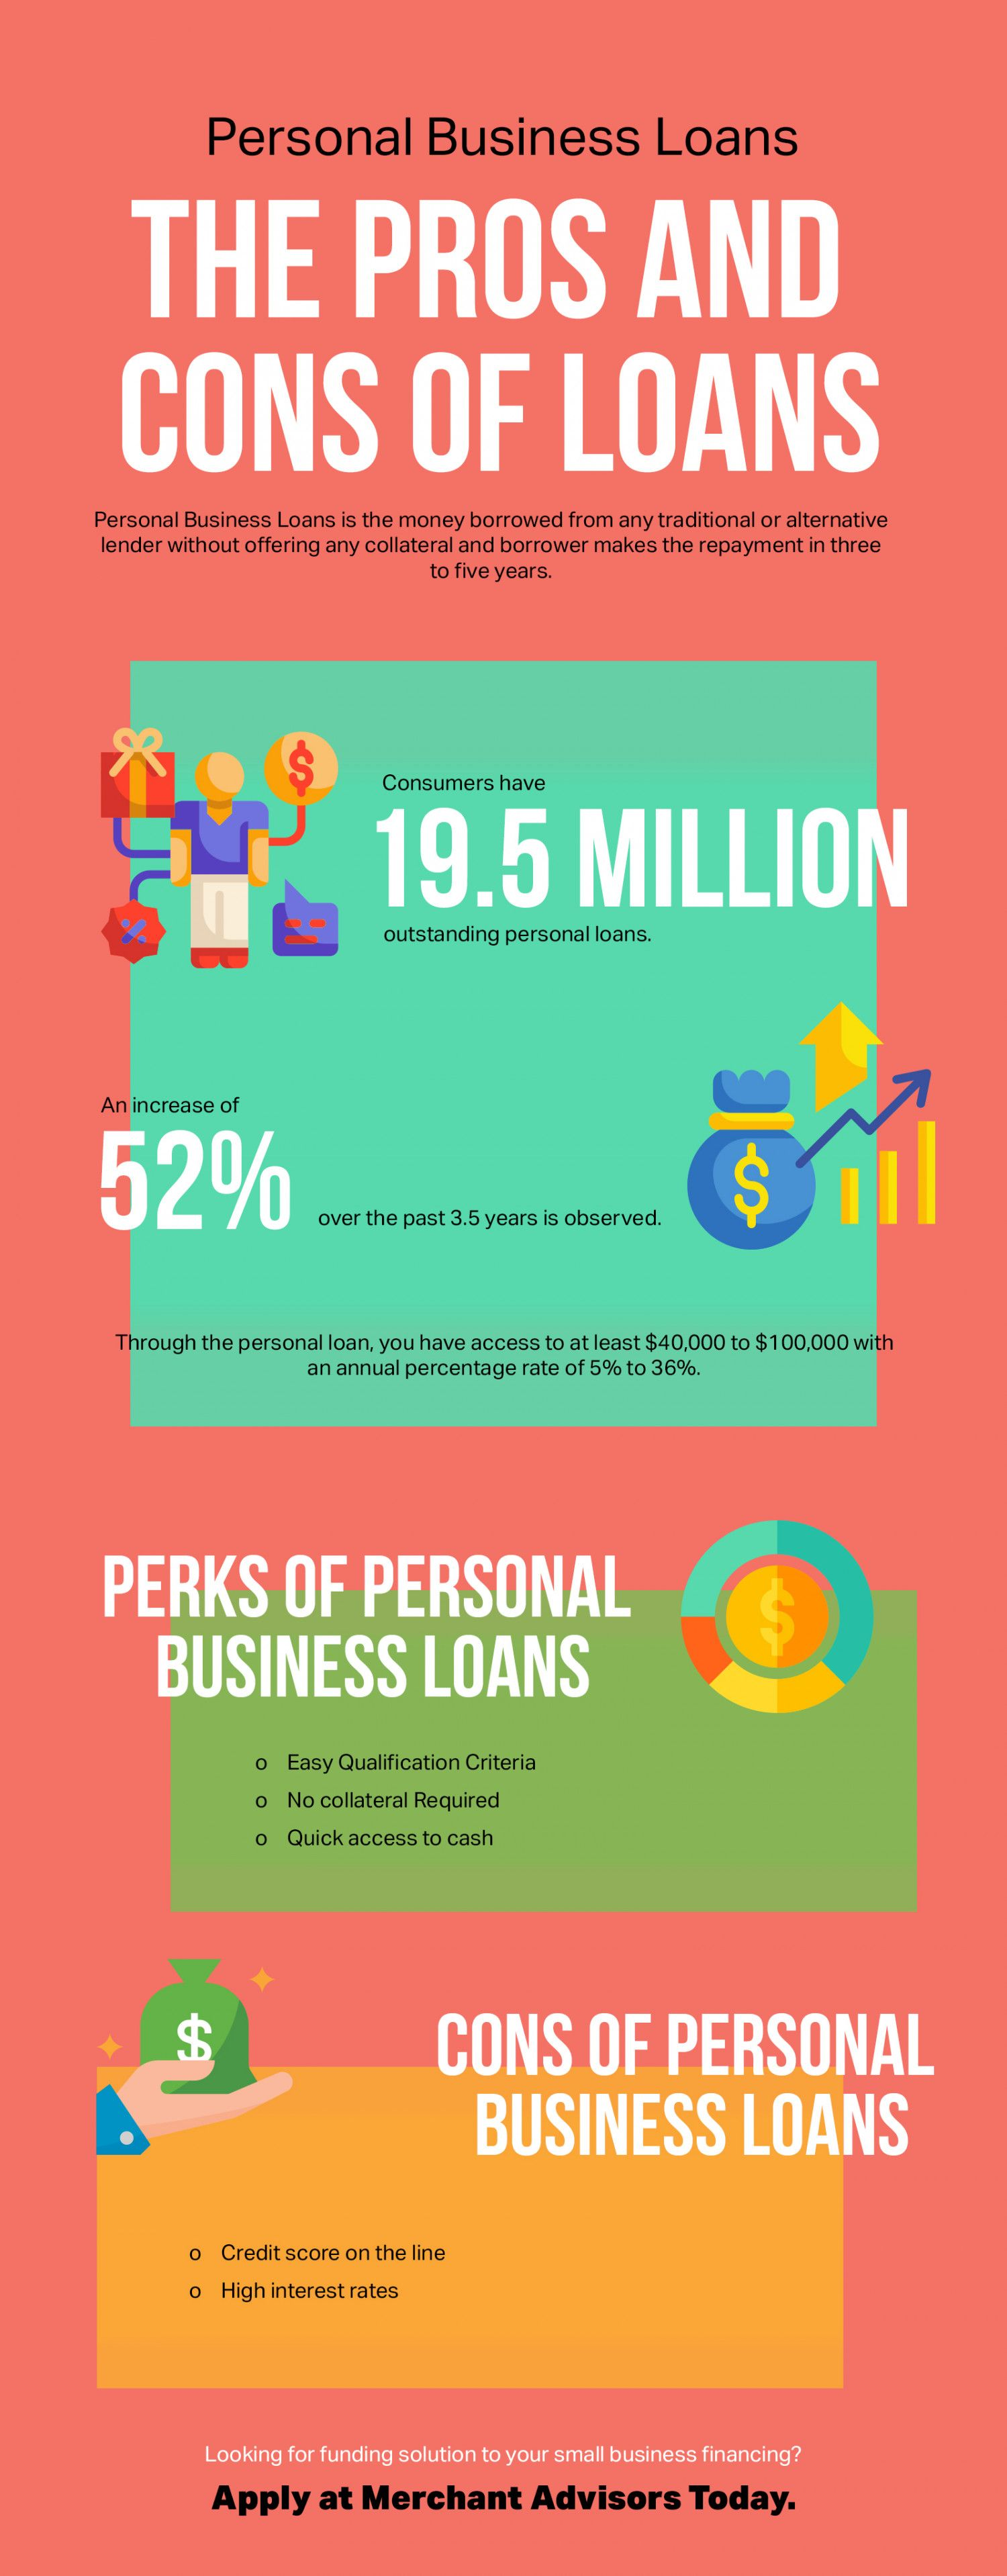 Personal Business Loans The Pros And Cons Of Loans Visual Ly Business Person Business Loans Small Business Loans